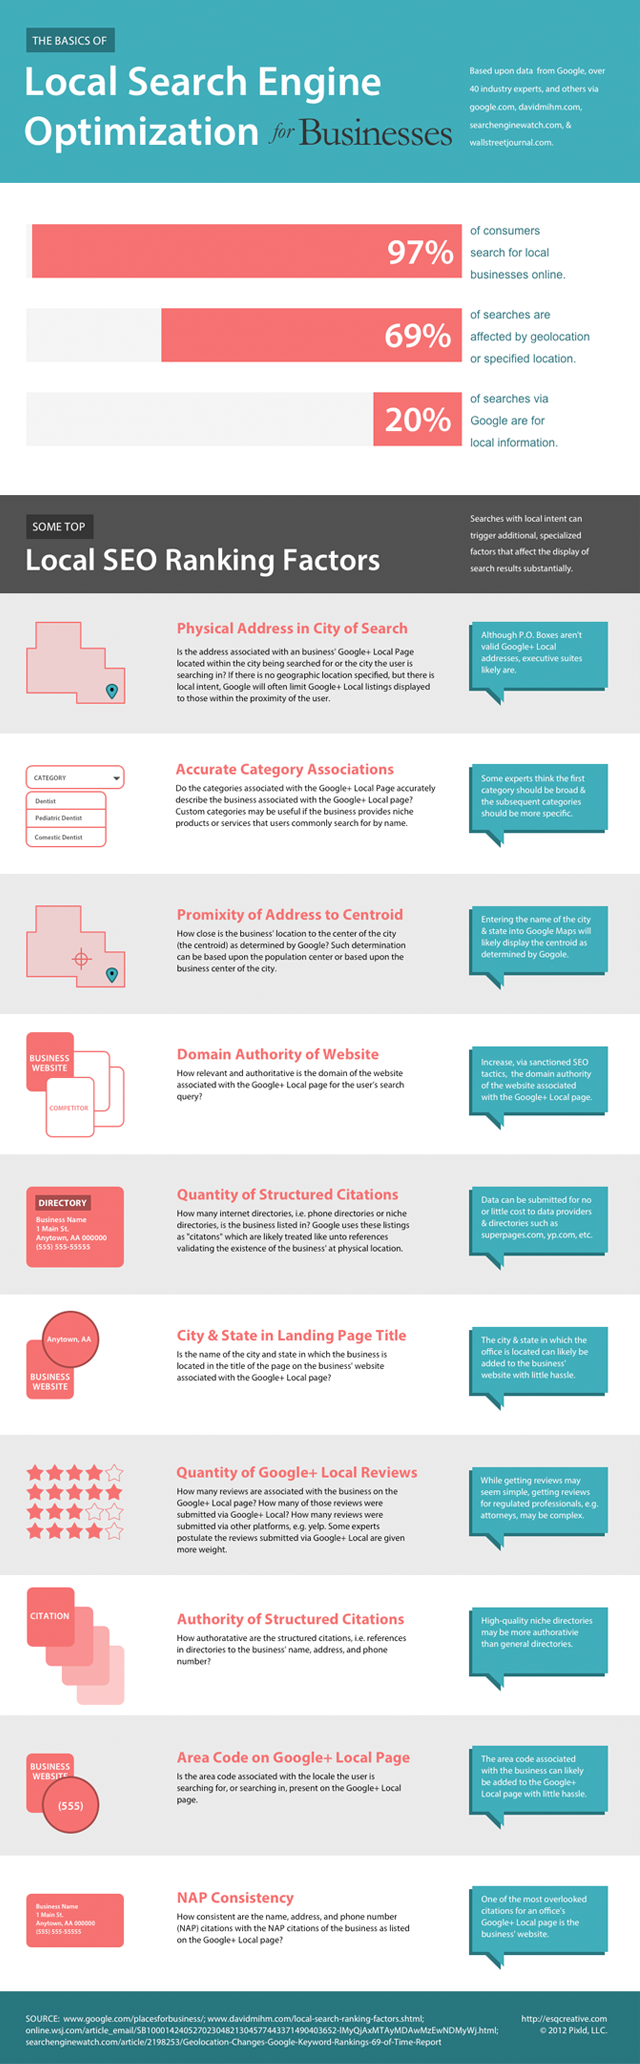 Infographic of Local SEO Ranking Factors